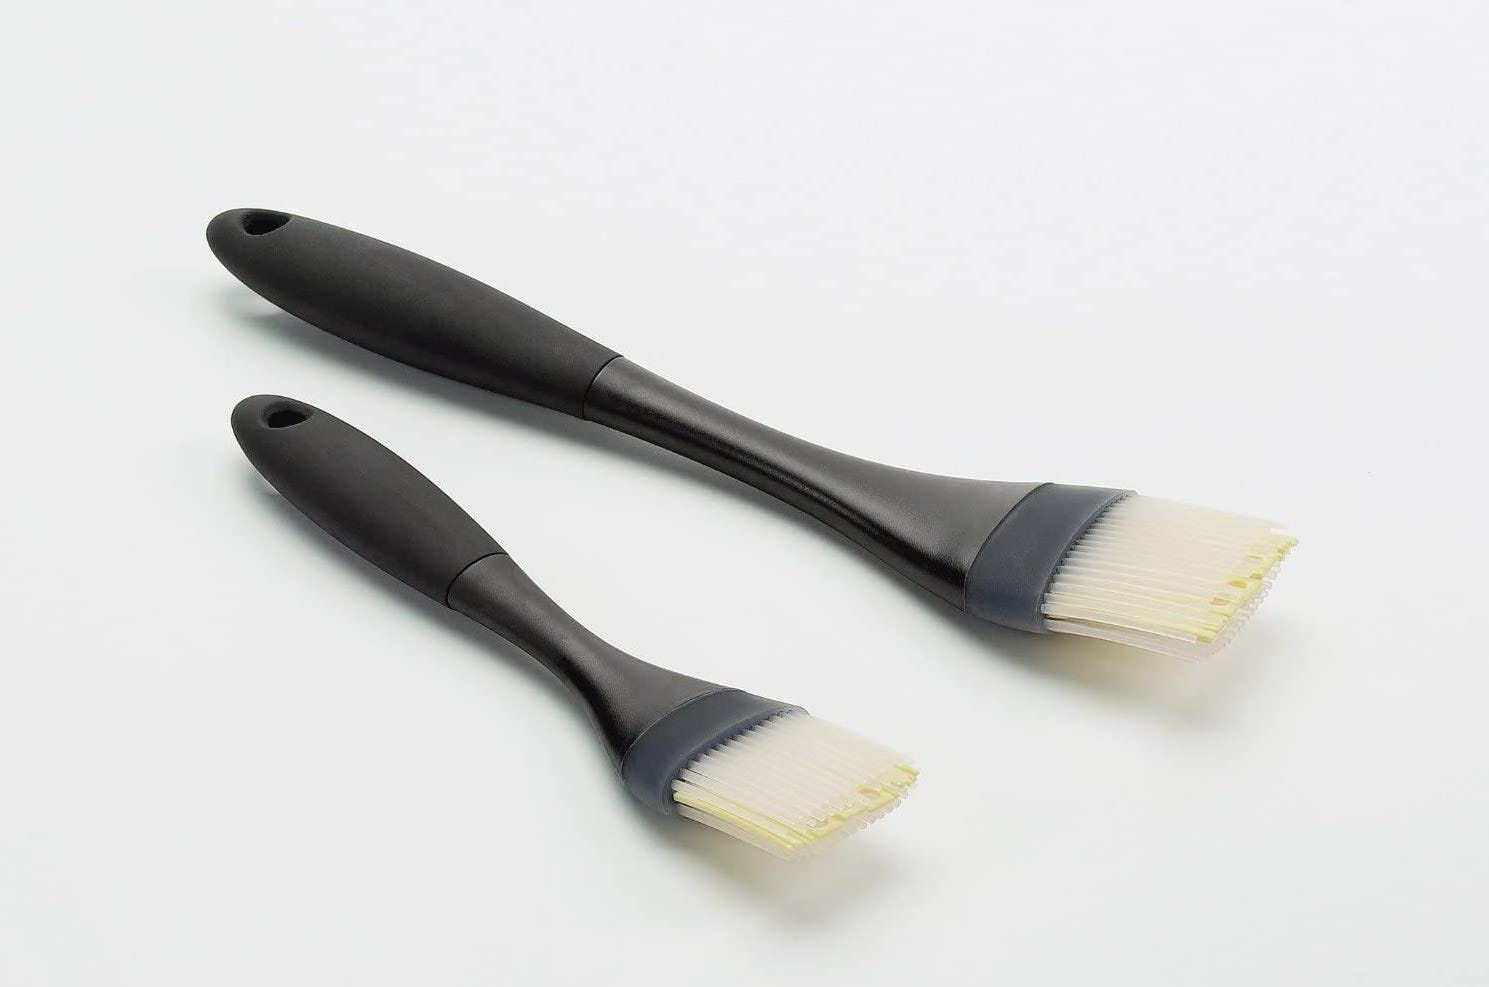 Two black-handled silicone pastry brushes